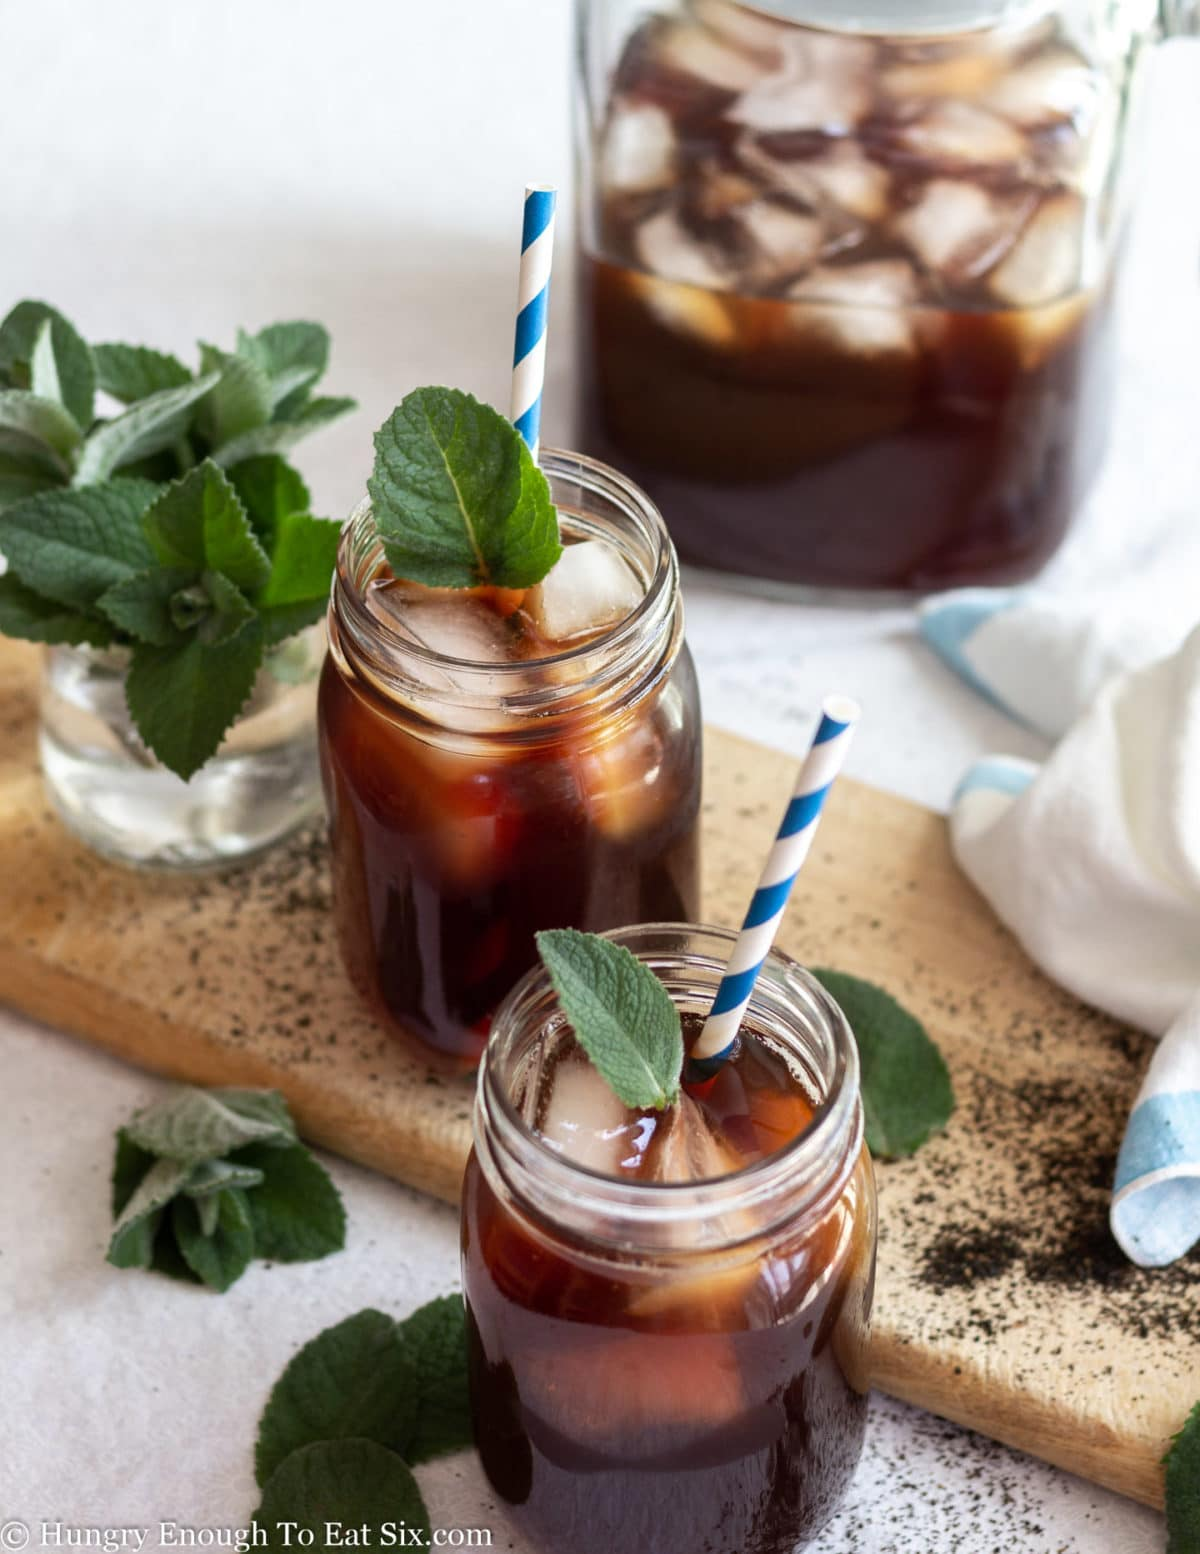 Pitcher and mason jars of dark iced tea with ice cubes and mint leaves.